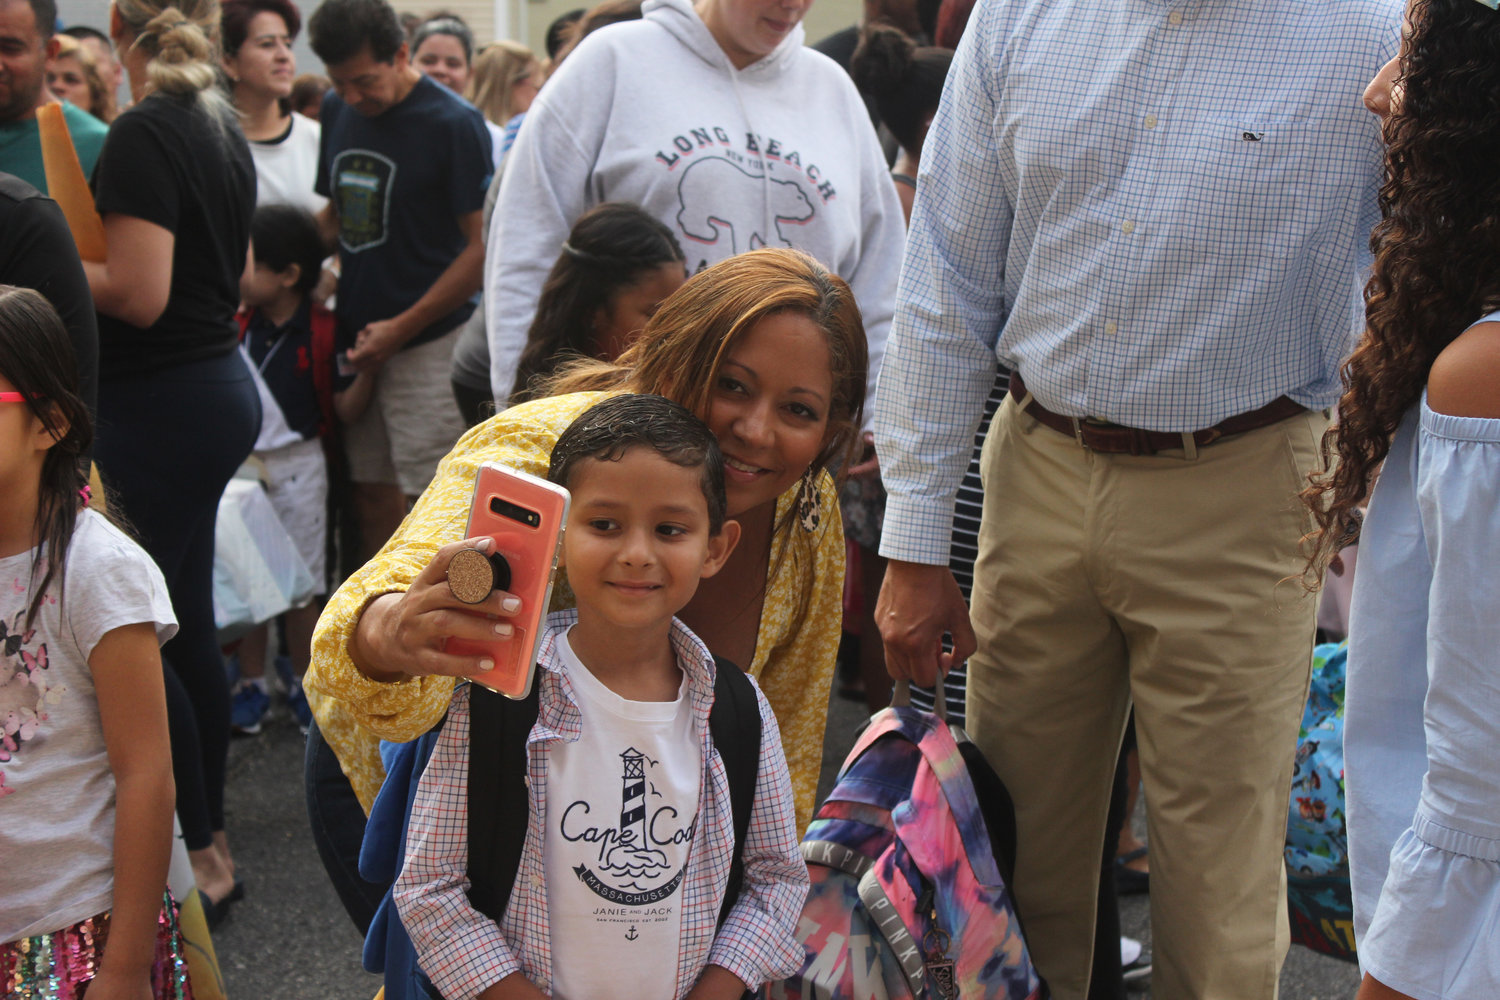 Melissa Fernandez took a selfie with her son, Logan, before his first day of school at Chestnut Street School on Sept. 4.